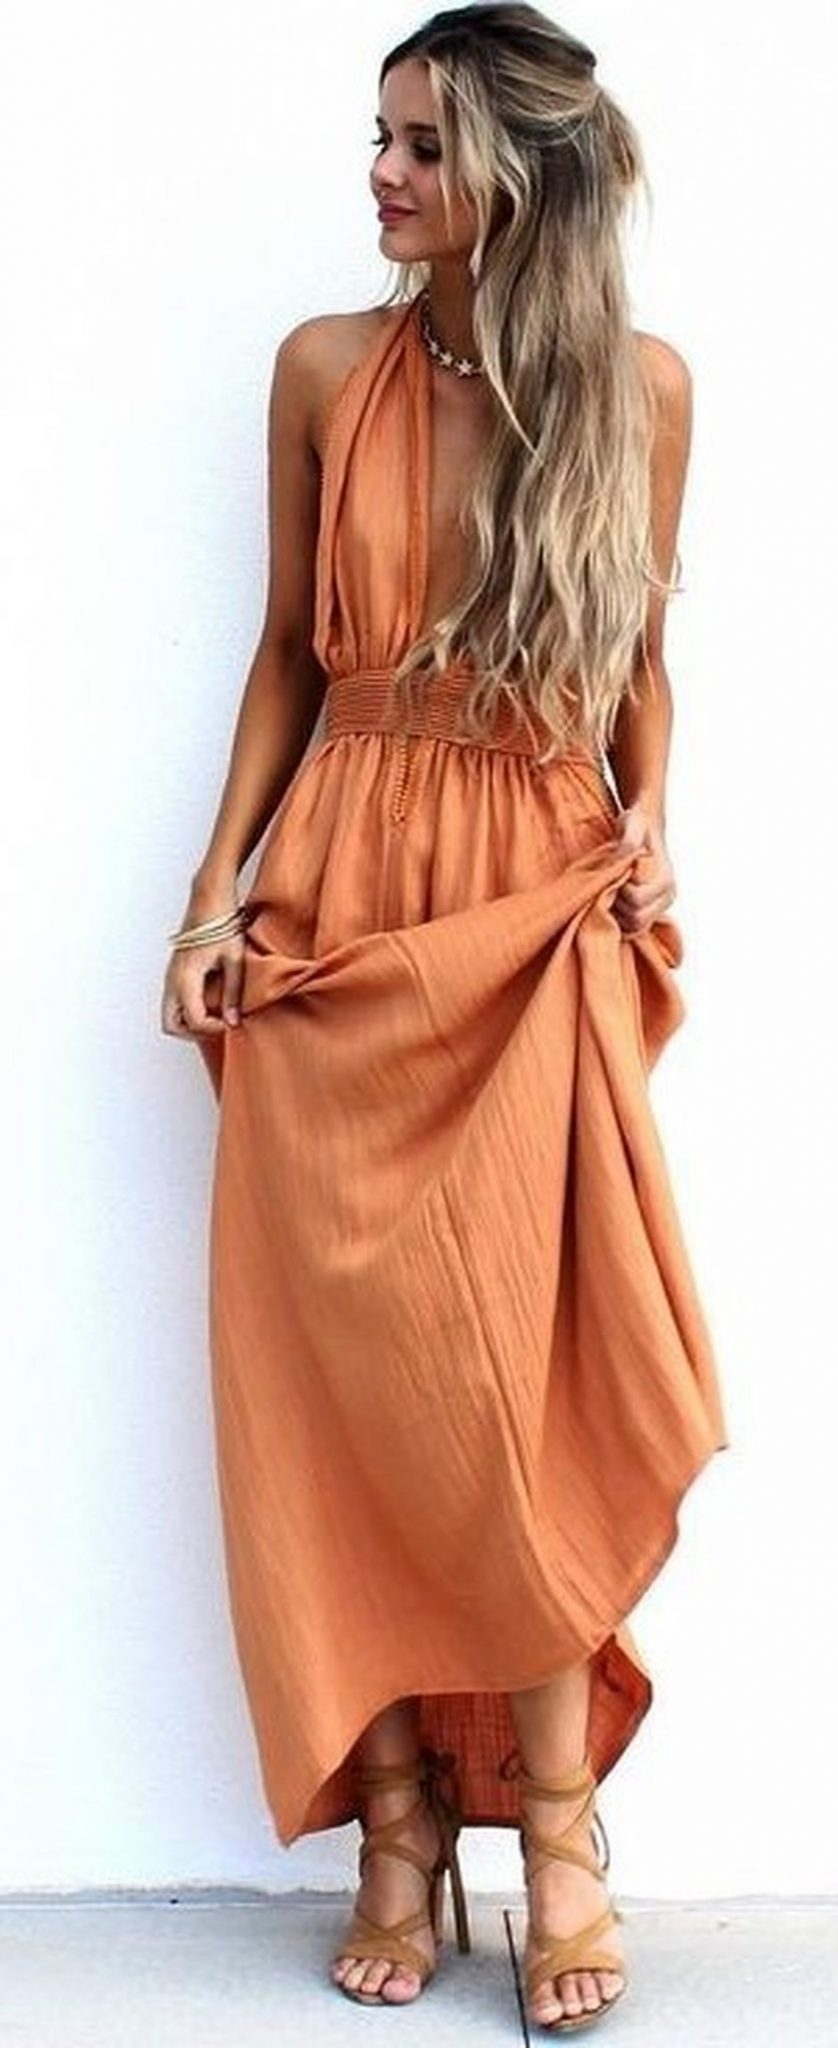 55 Orange Outfit Ideas That Make You Look Young and Fresh 55